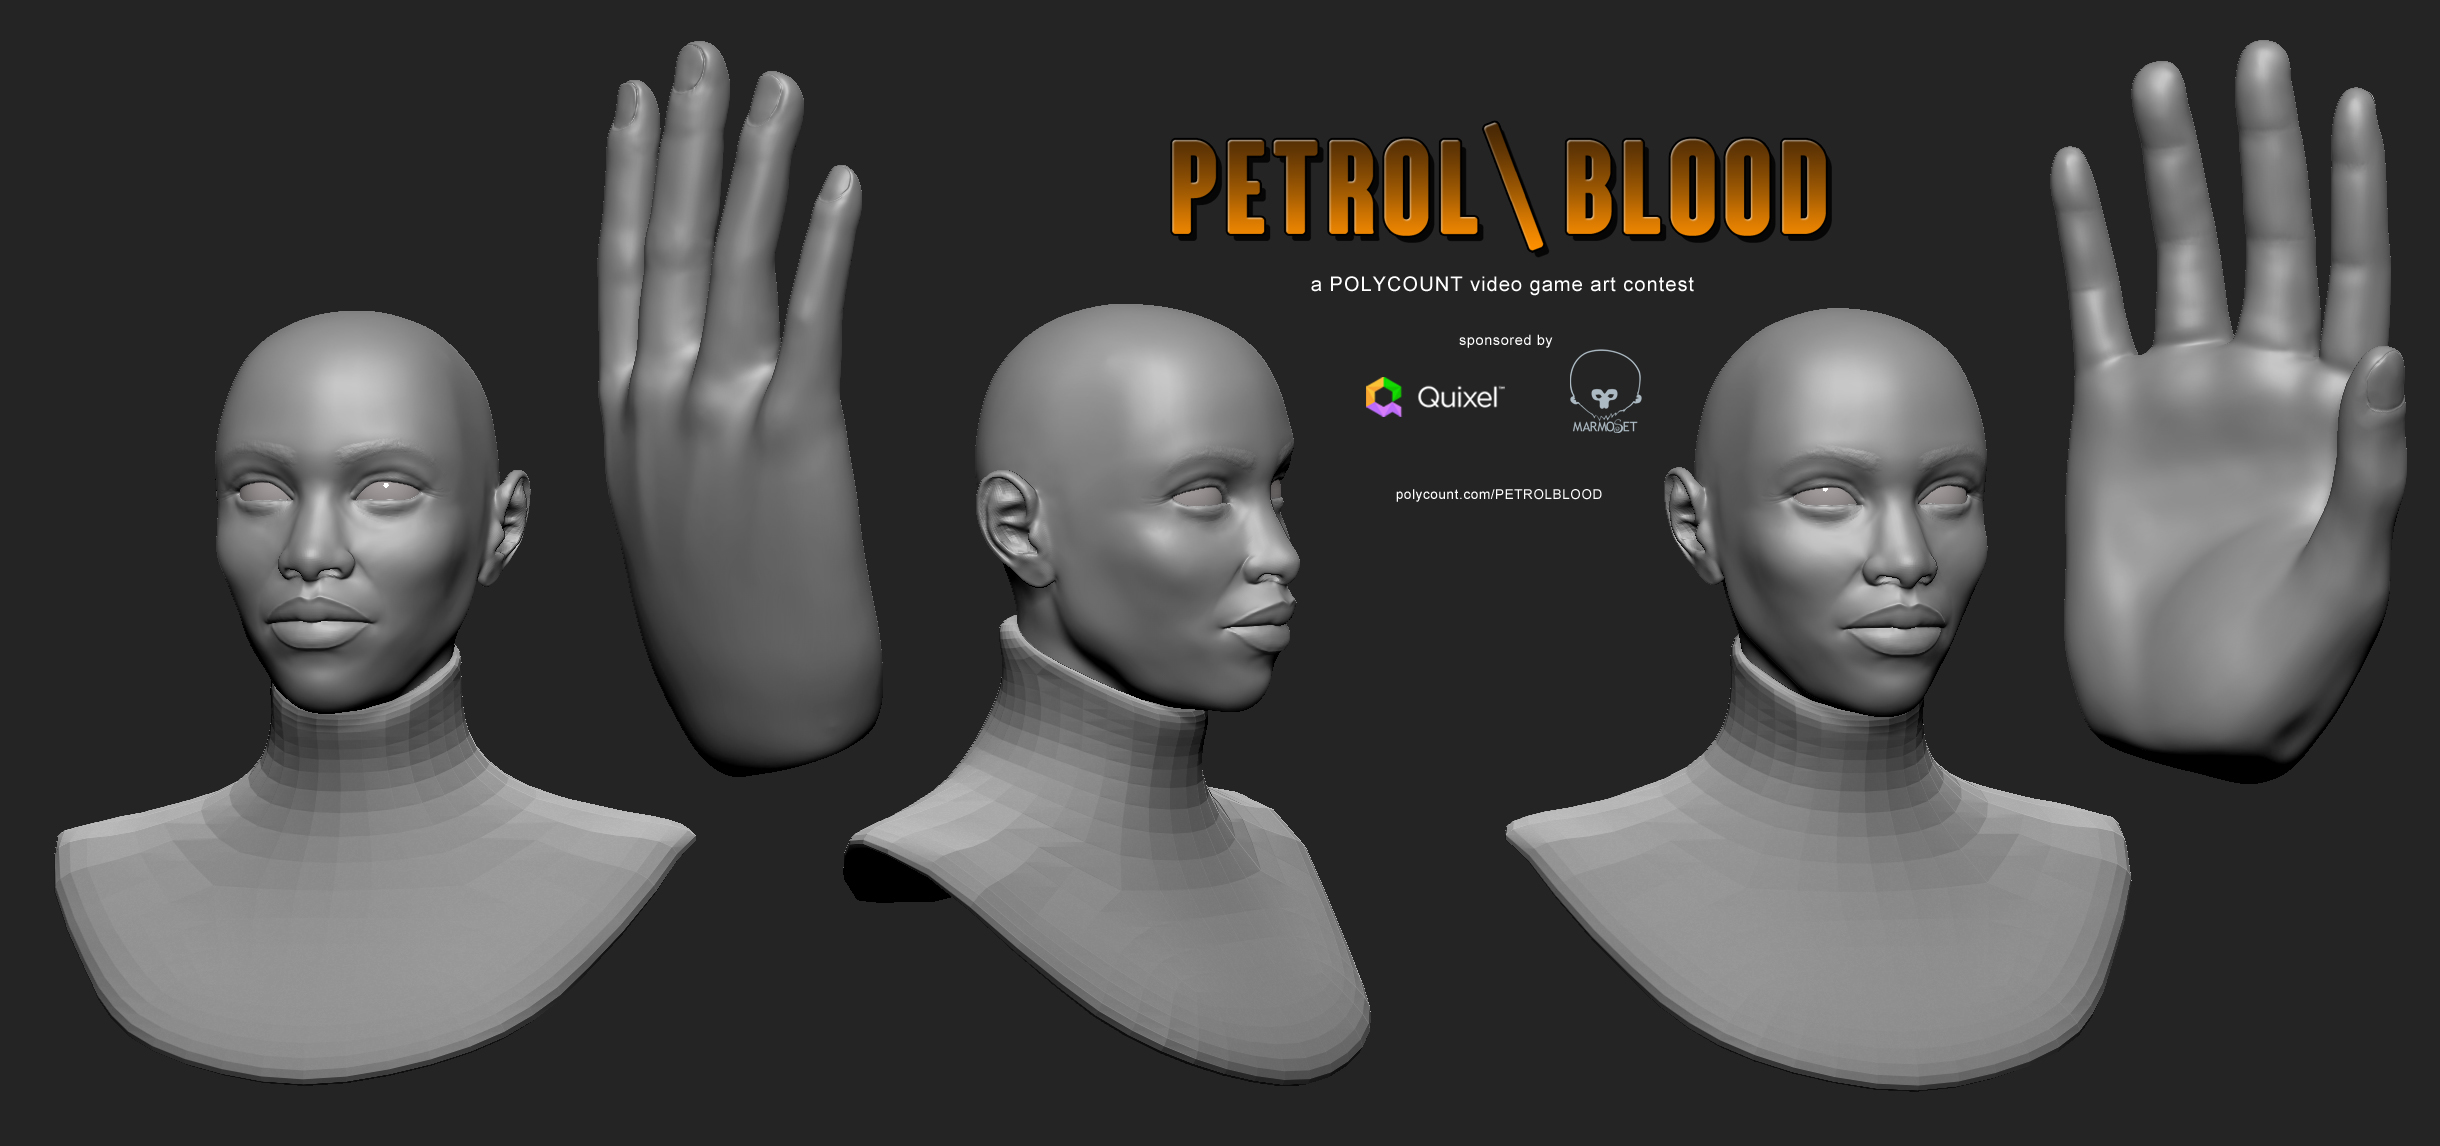 petro_blood_wip02_headhands_by_theartistictiger-d7qas88.jpg